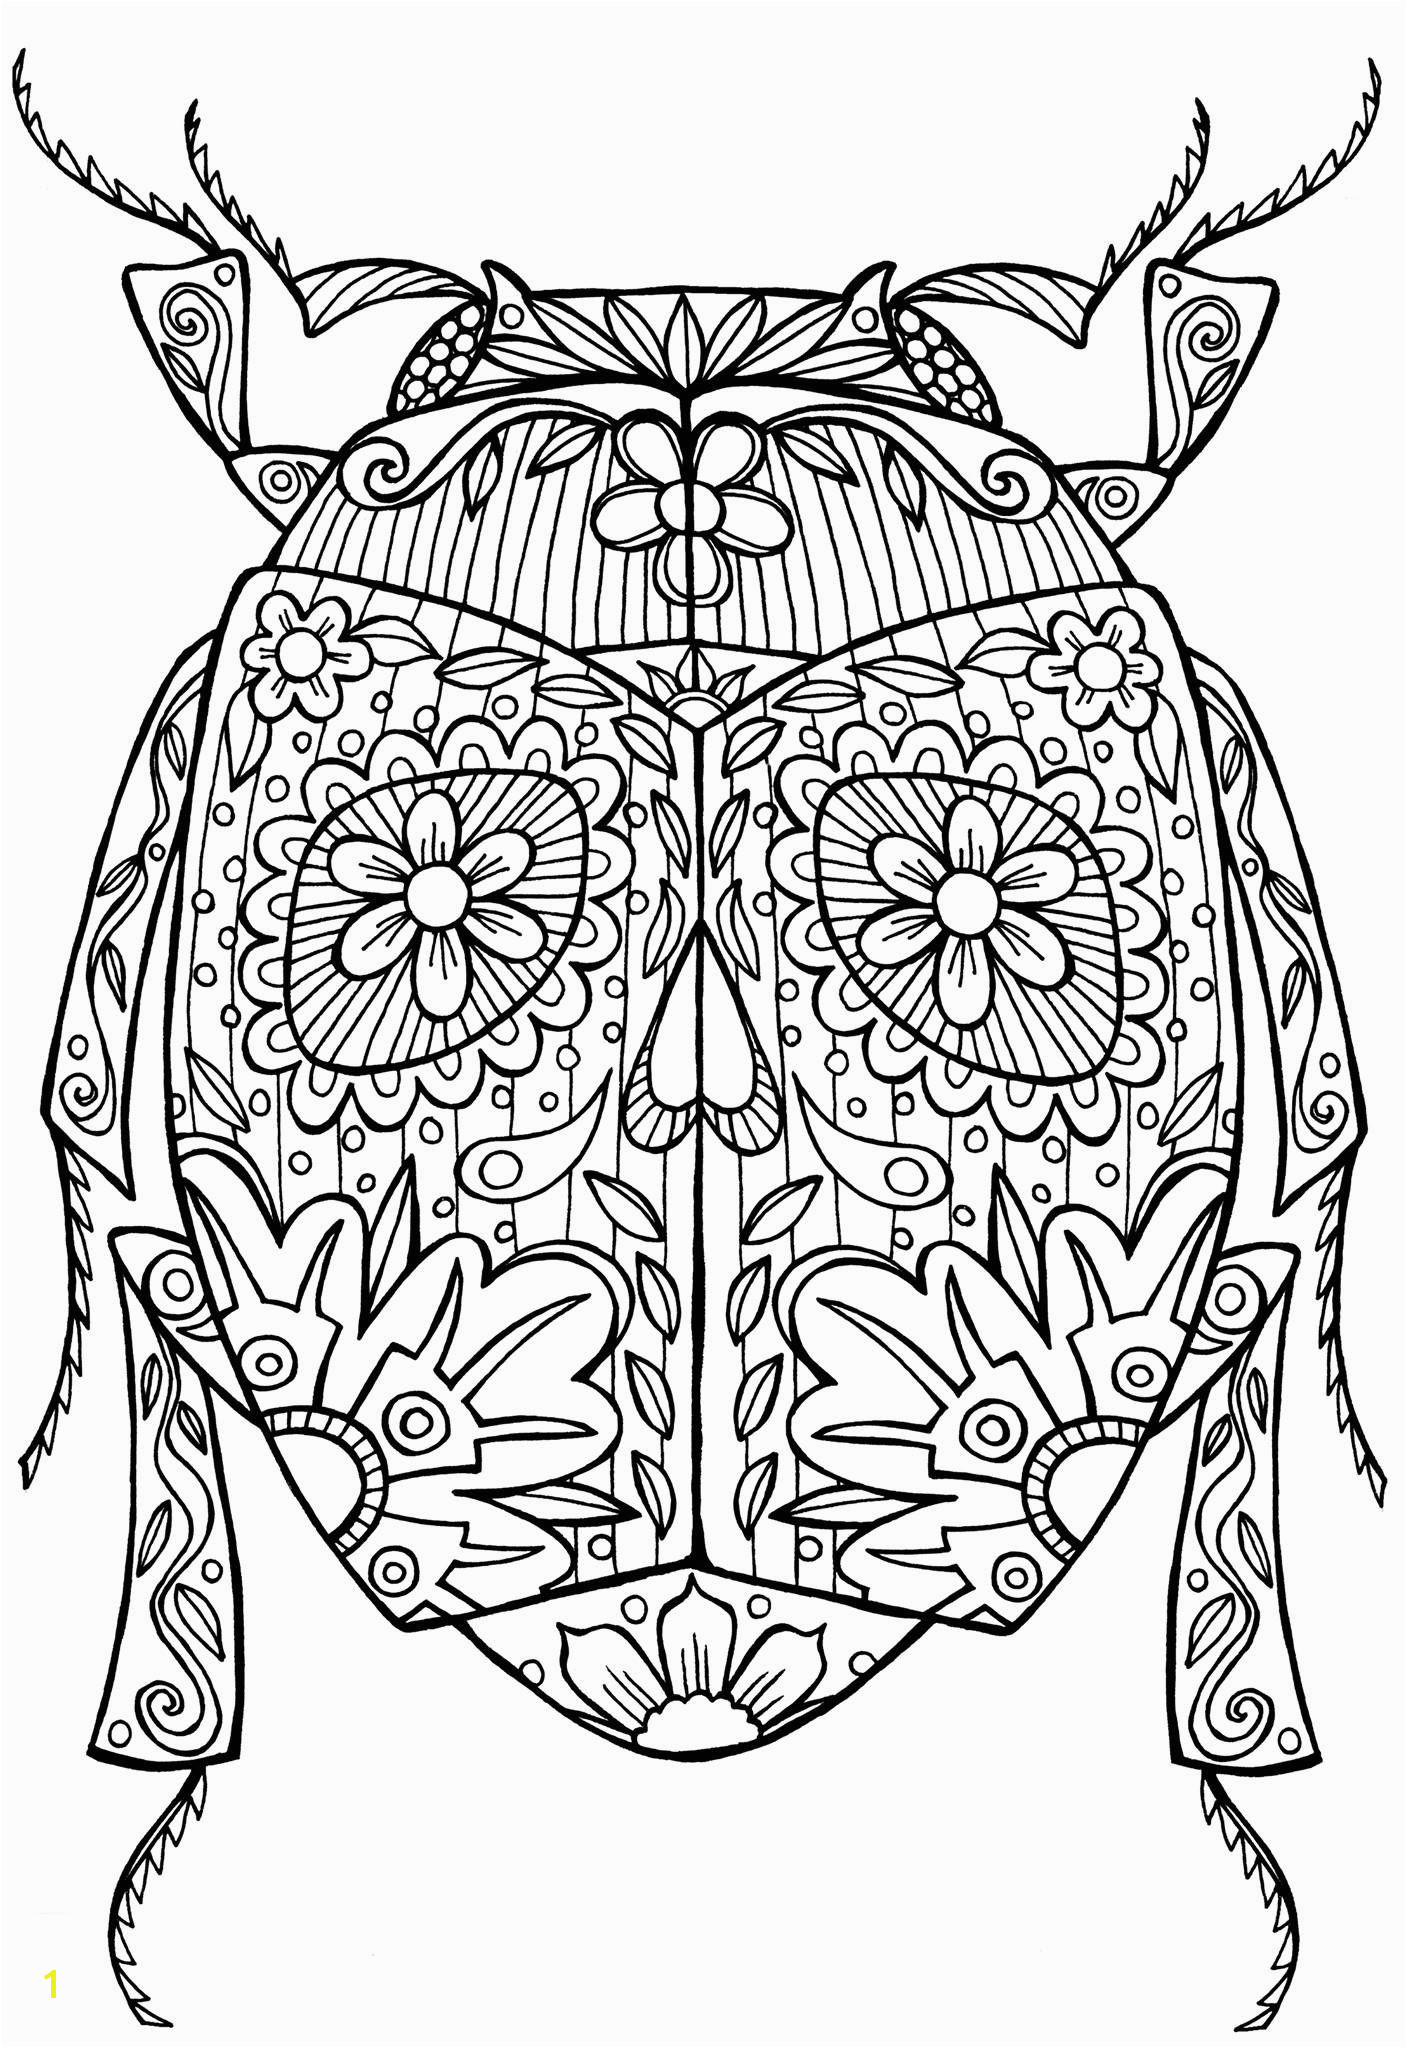 Beetle Bug Abstract Doodle Zentangle Coloring pages colouring adult detailed advanced printable Kleuren voor volwassenen coloriage pour adulte anti stress